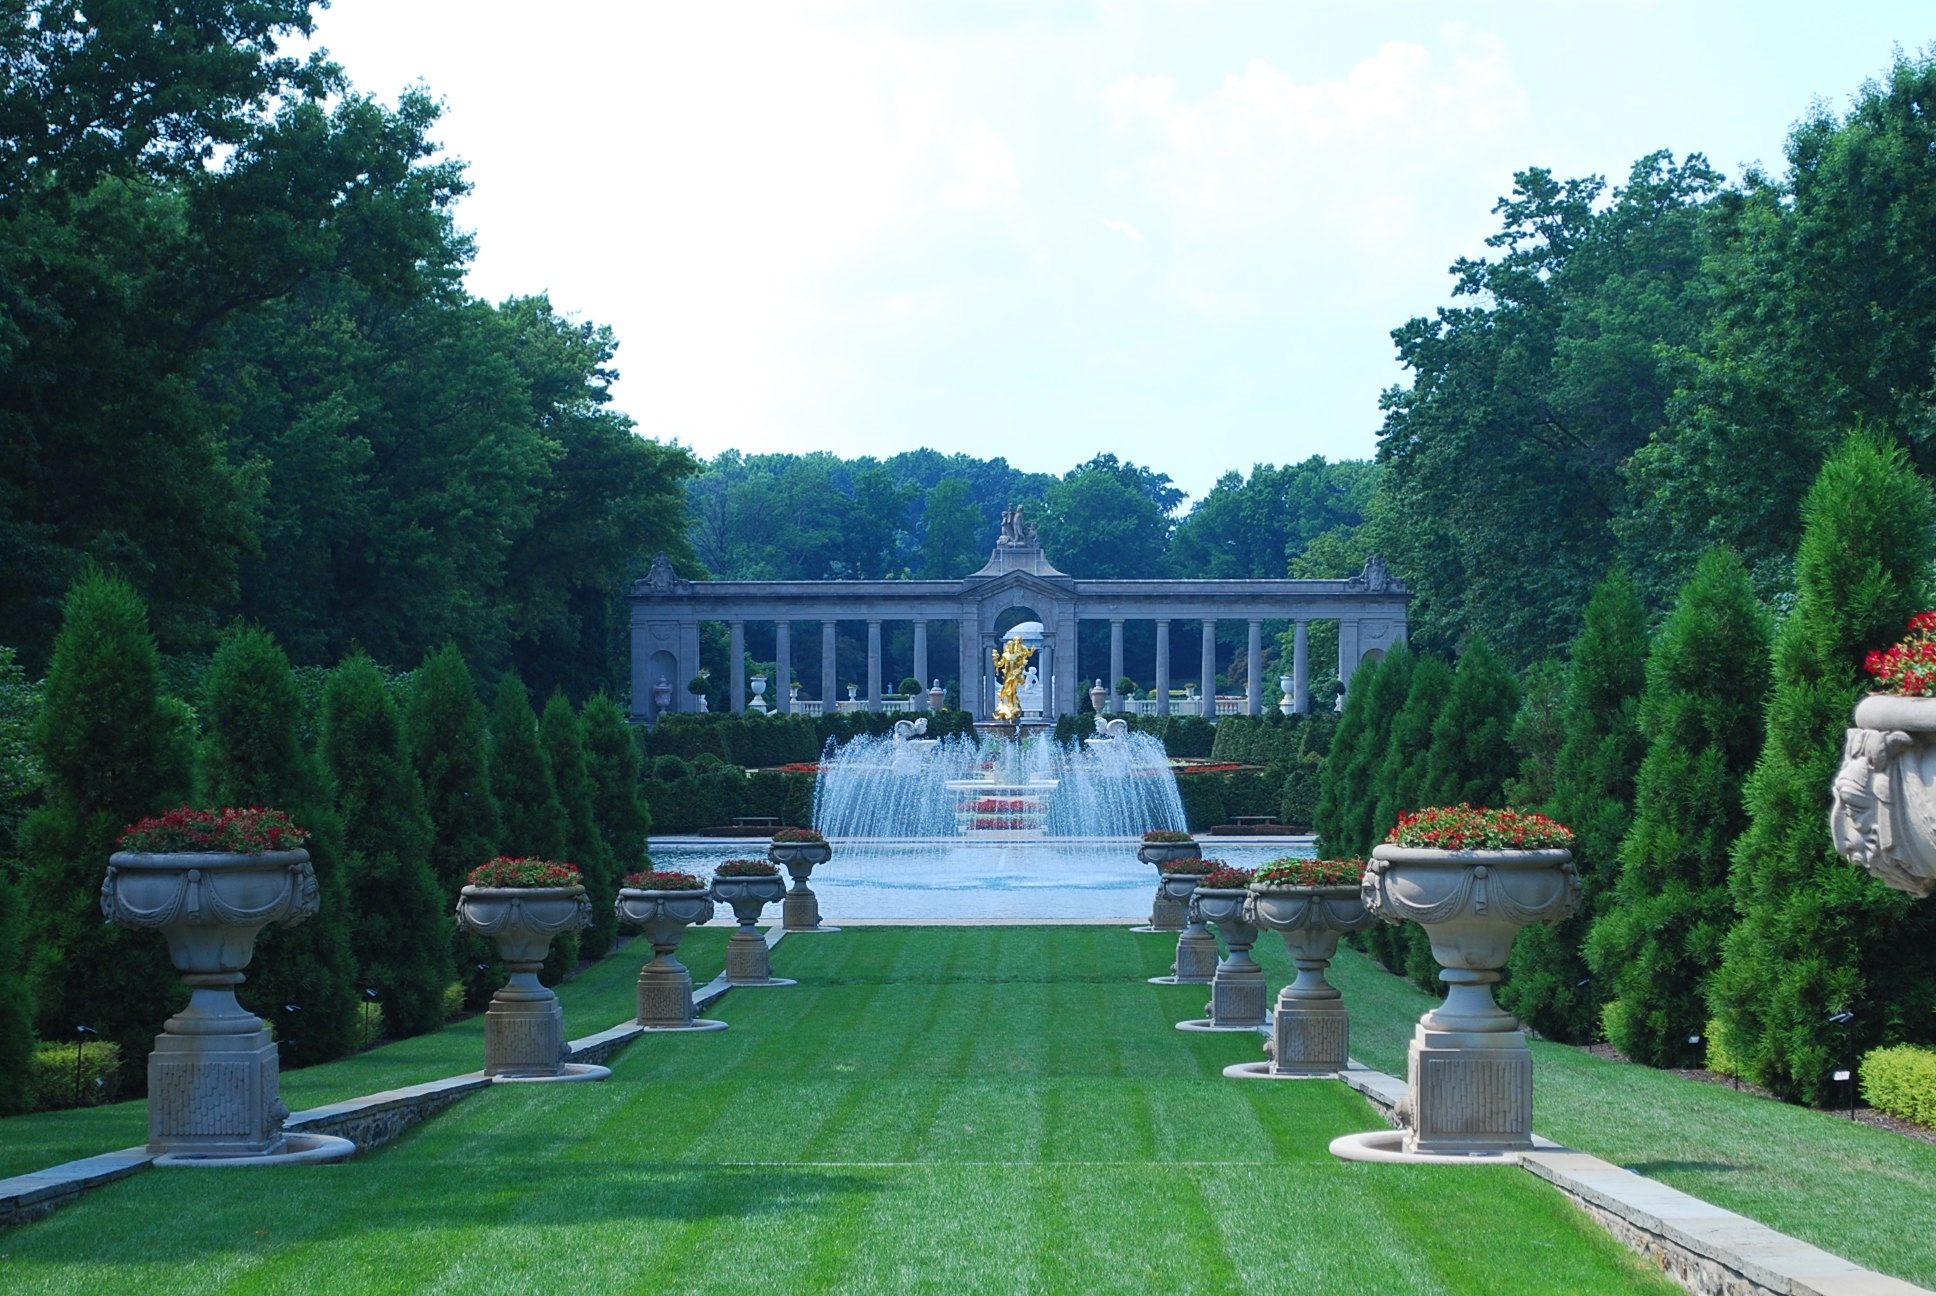 Caption: Garden at Newmours Estate., Credit: Photo by Tonya Fitzpatrick